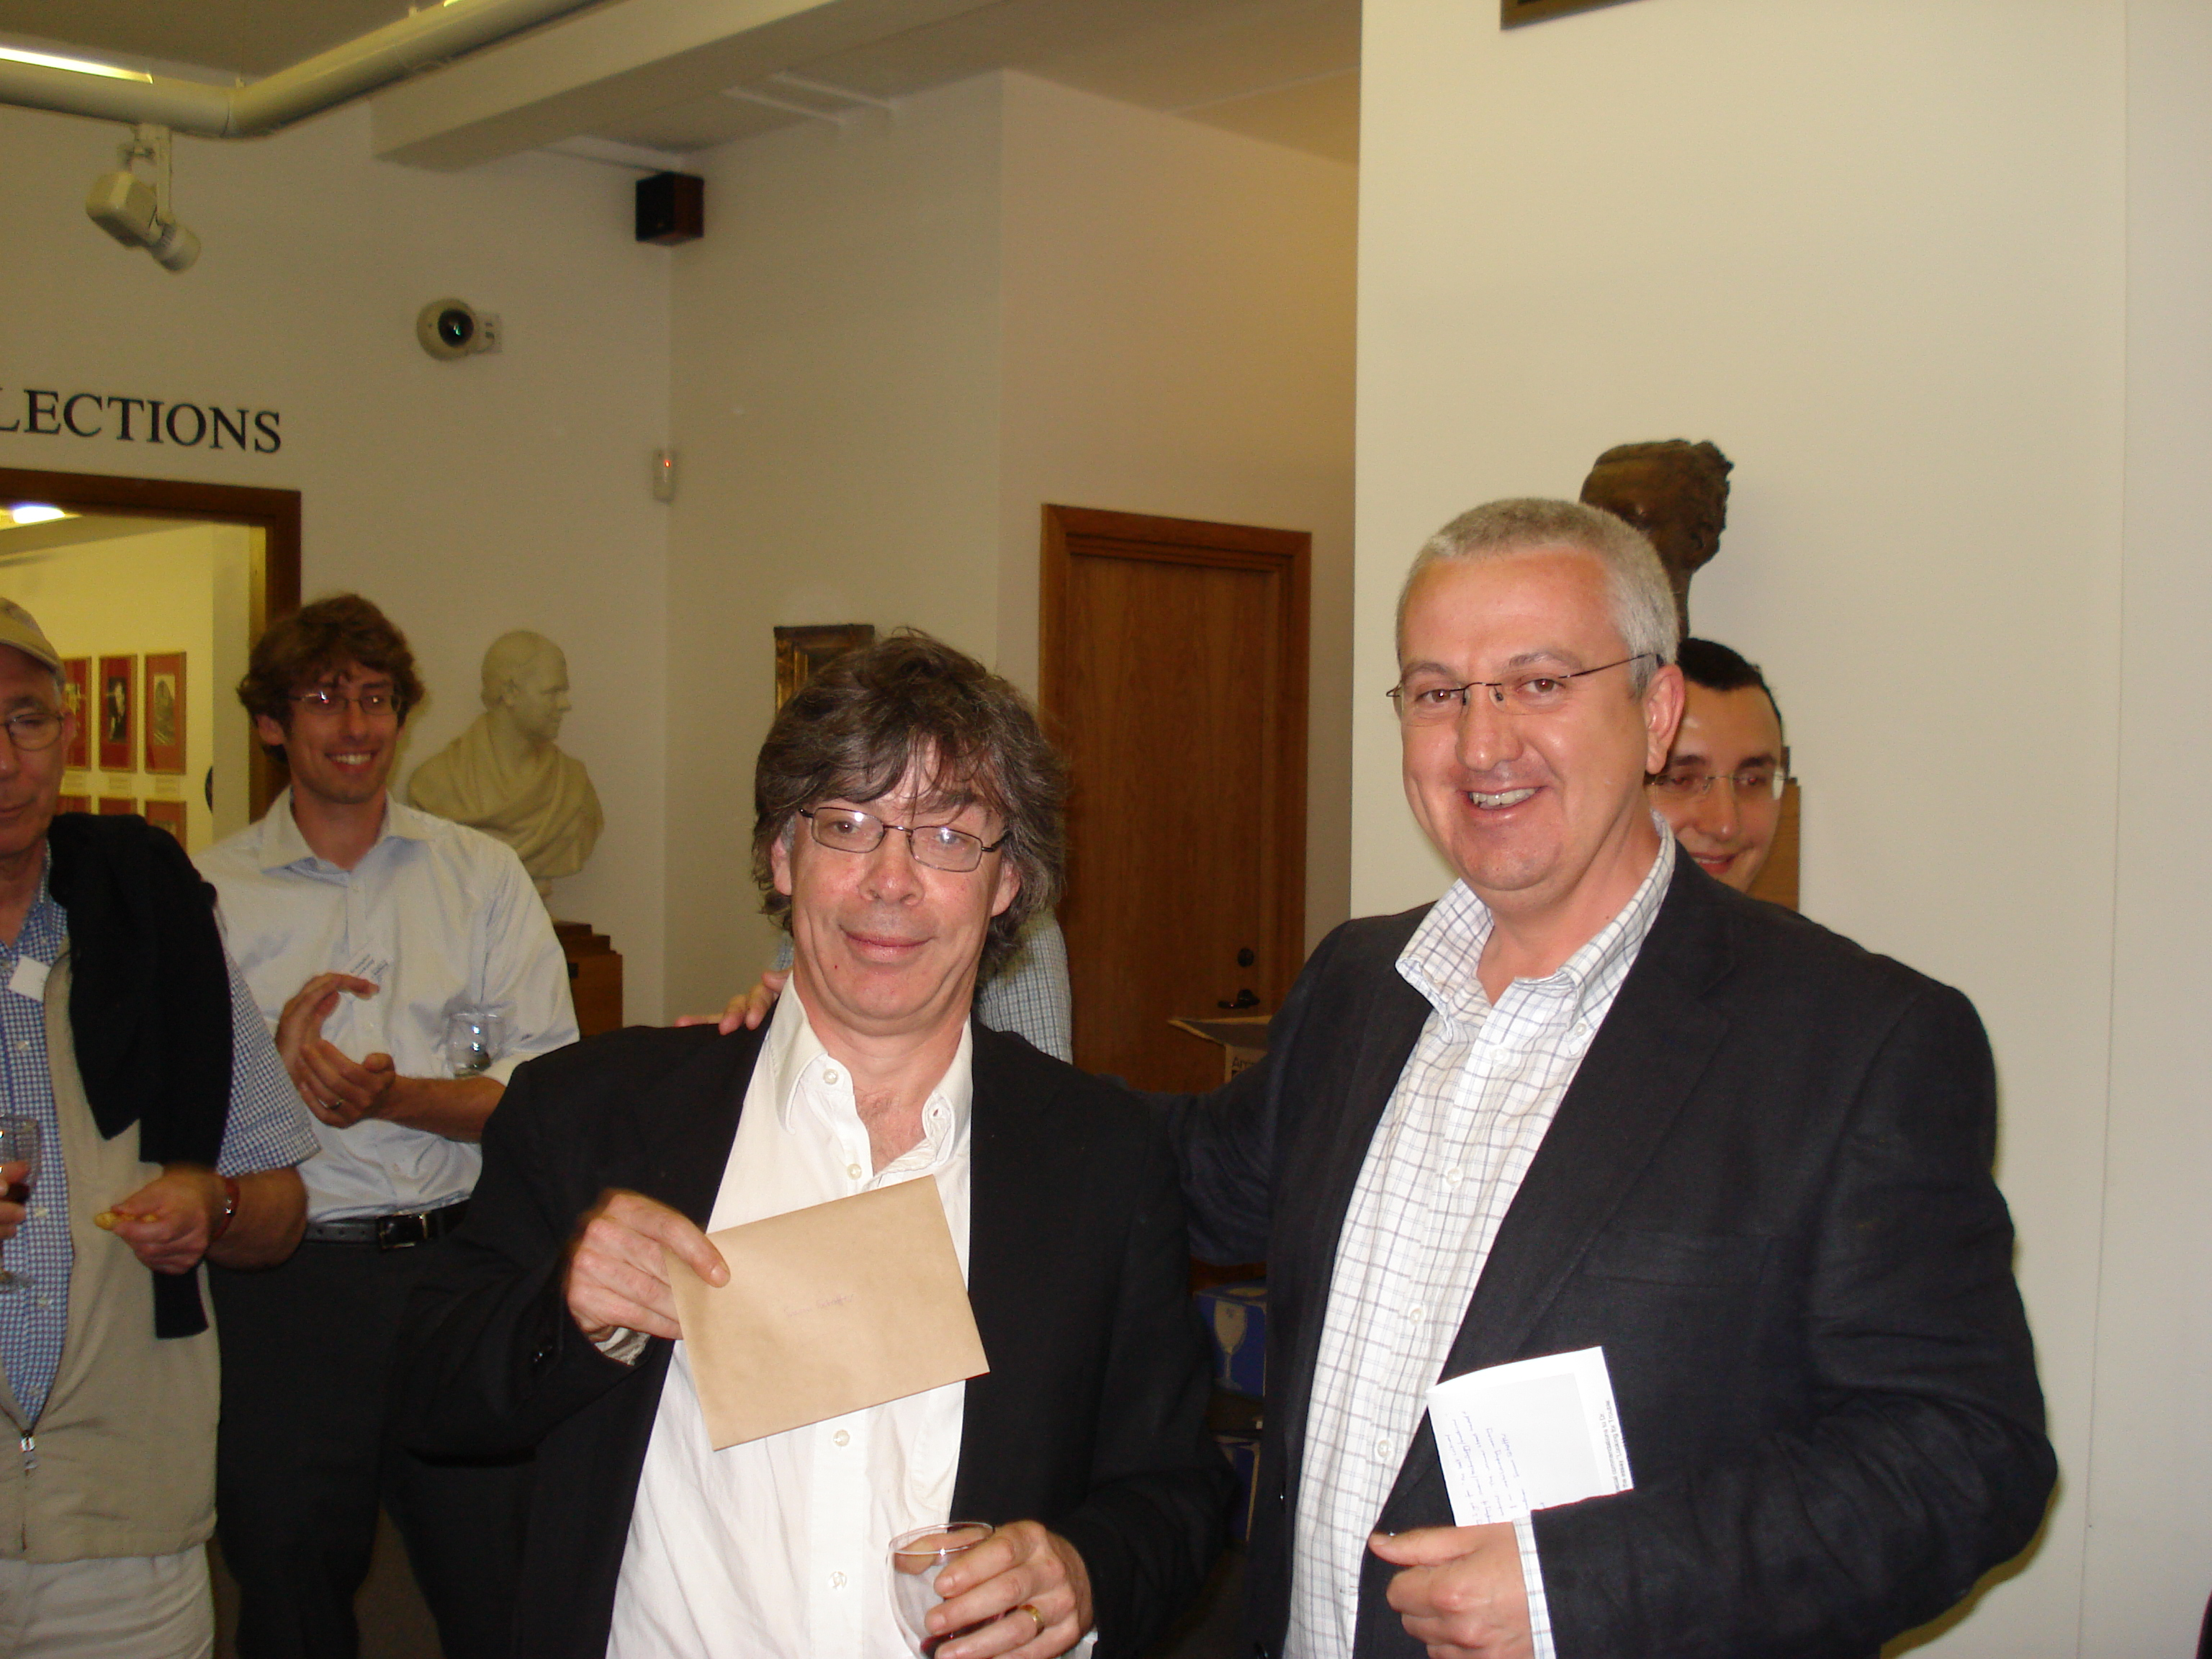 2009 Slade Prize winner Prof. Simon Schaffer (left) receives the award from the BSHS Vice-President, Jeff Hughes. Photo credit - James Sumner